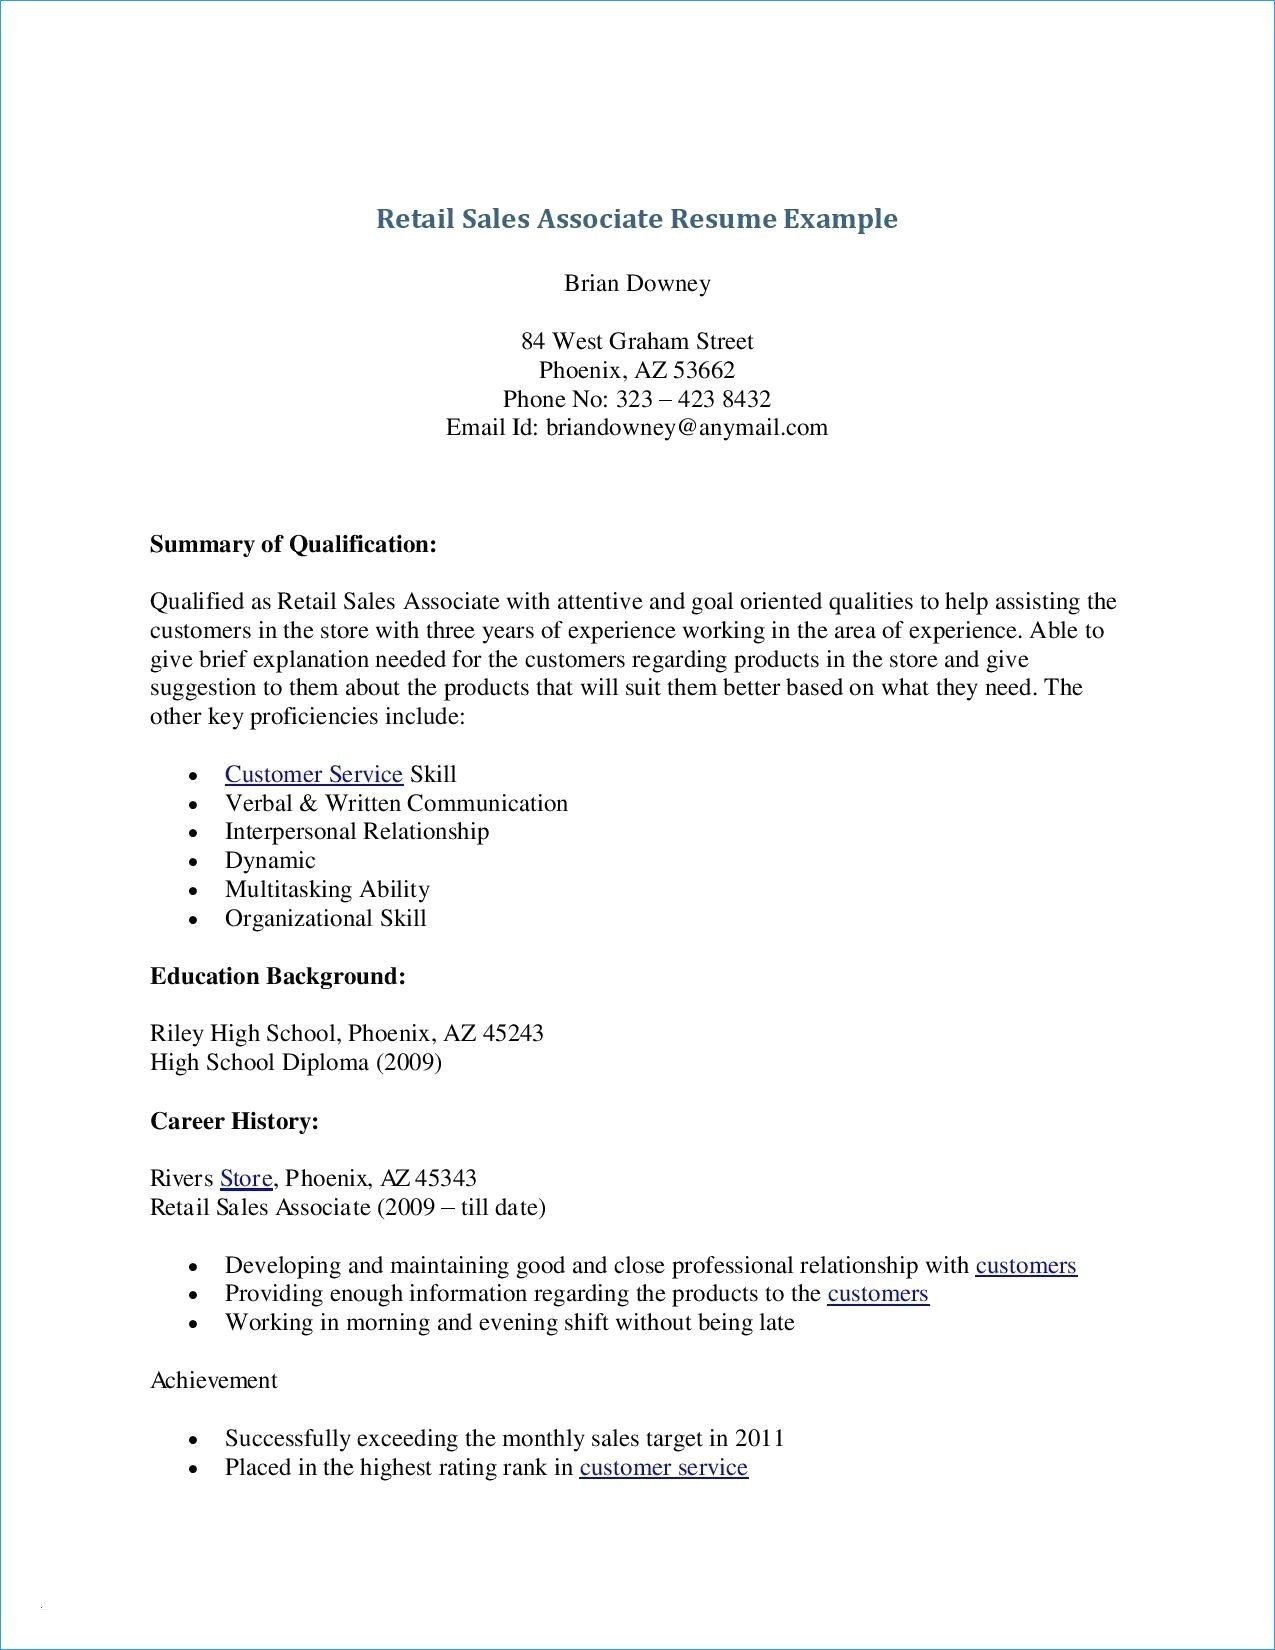 Adding Resume To Linkedin How To Banana Bread Archives Nosaintsonline Unique What To Put Resume Examples Resume Skills Resume No Experience